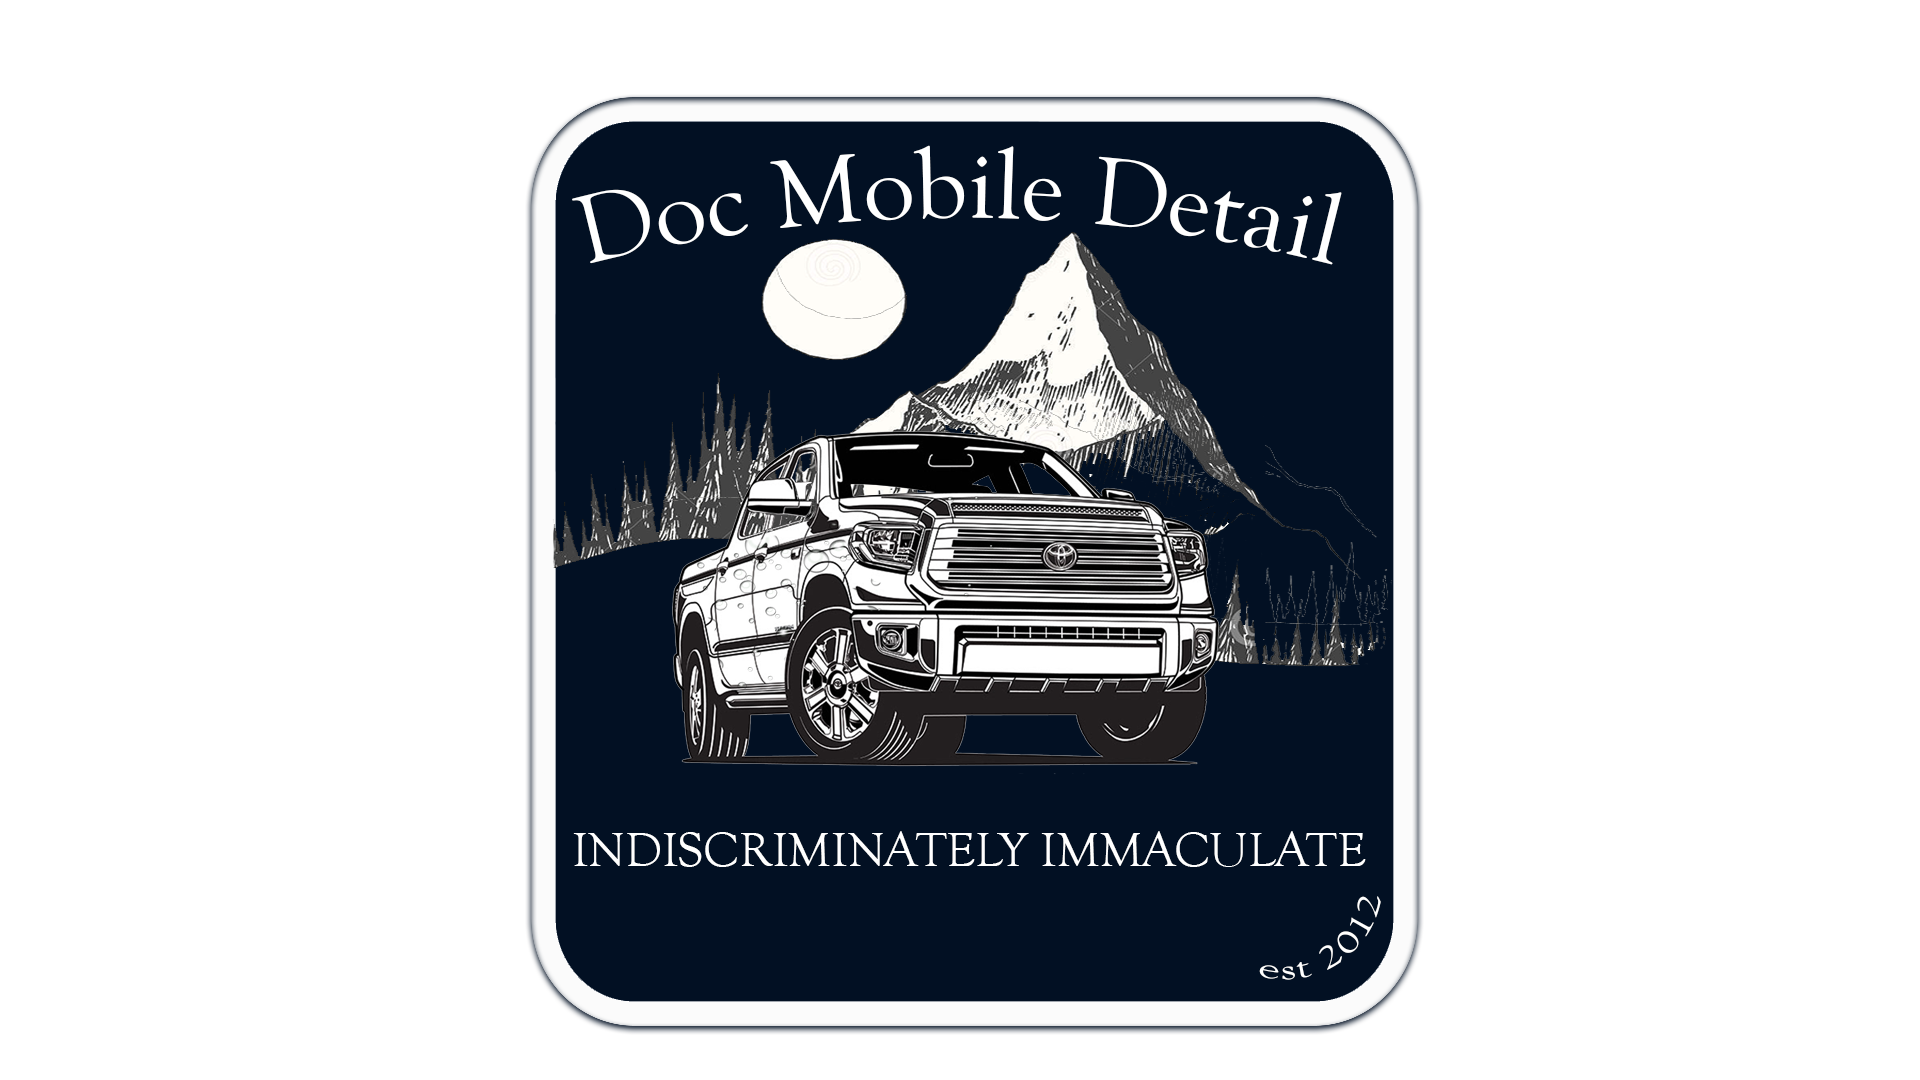 Doc Mobile Auto Detail